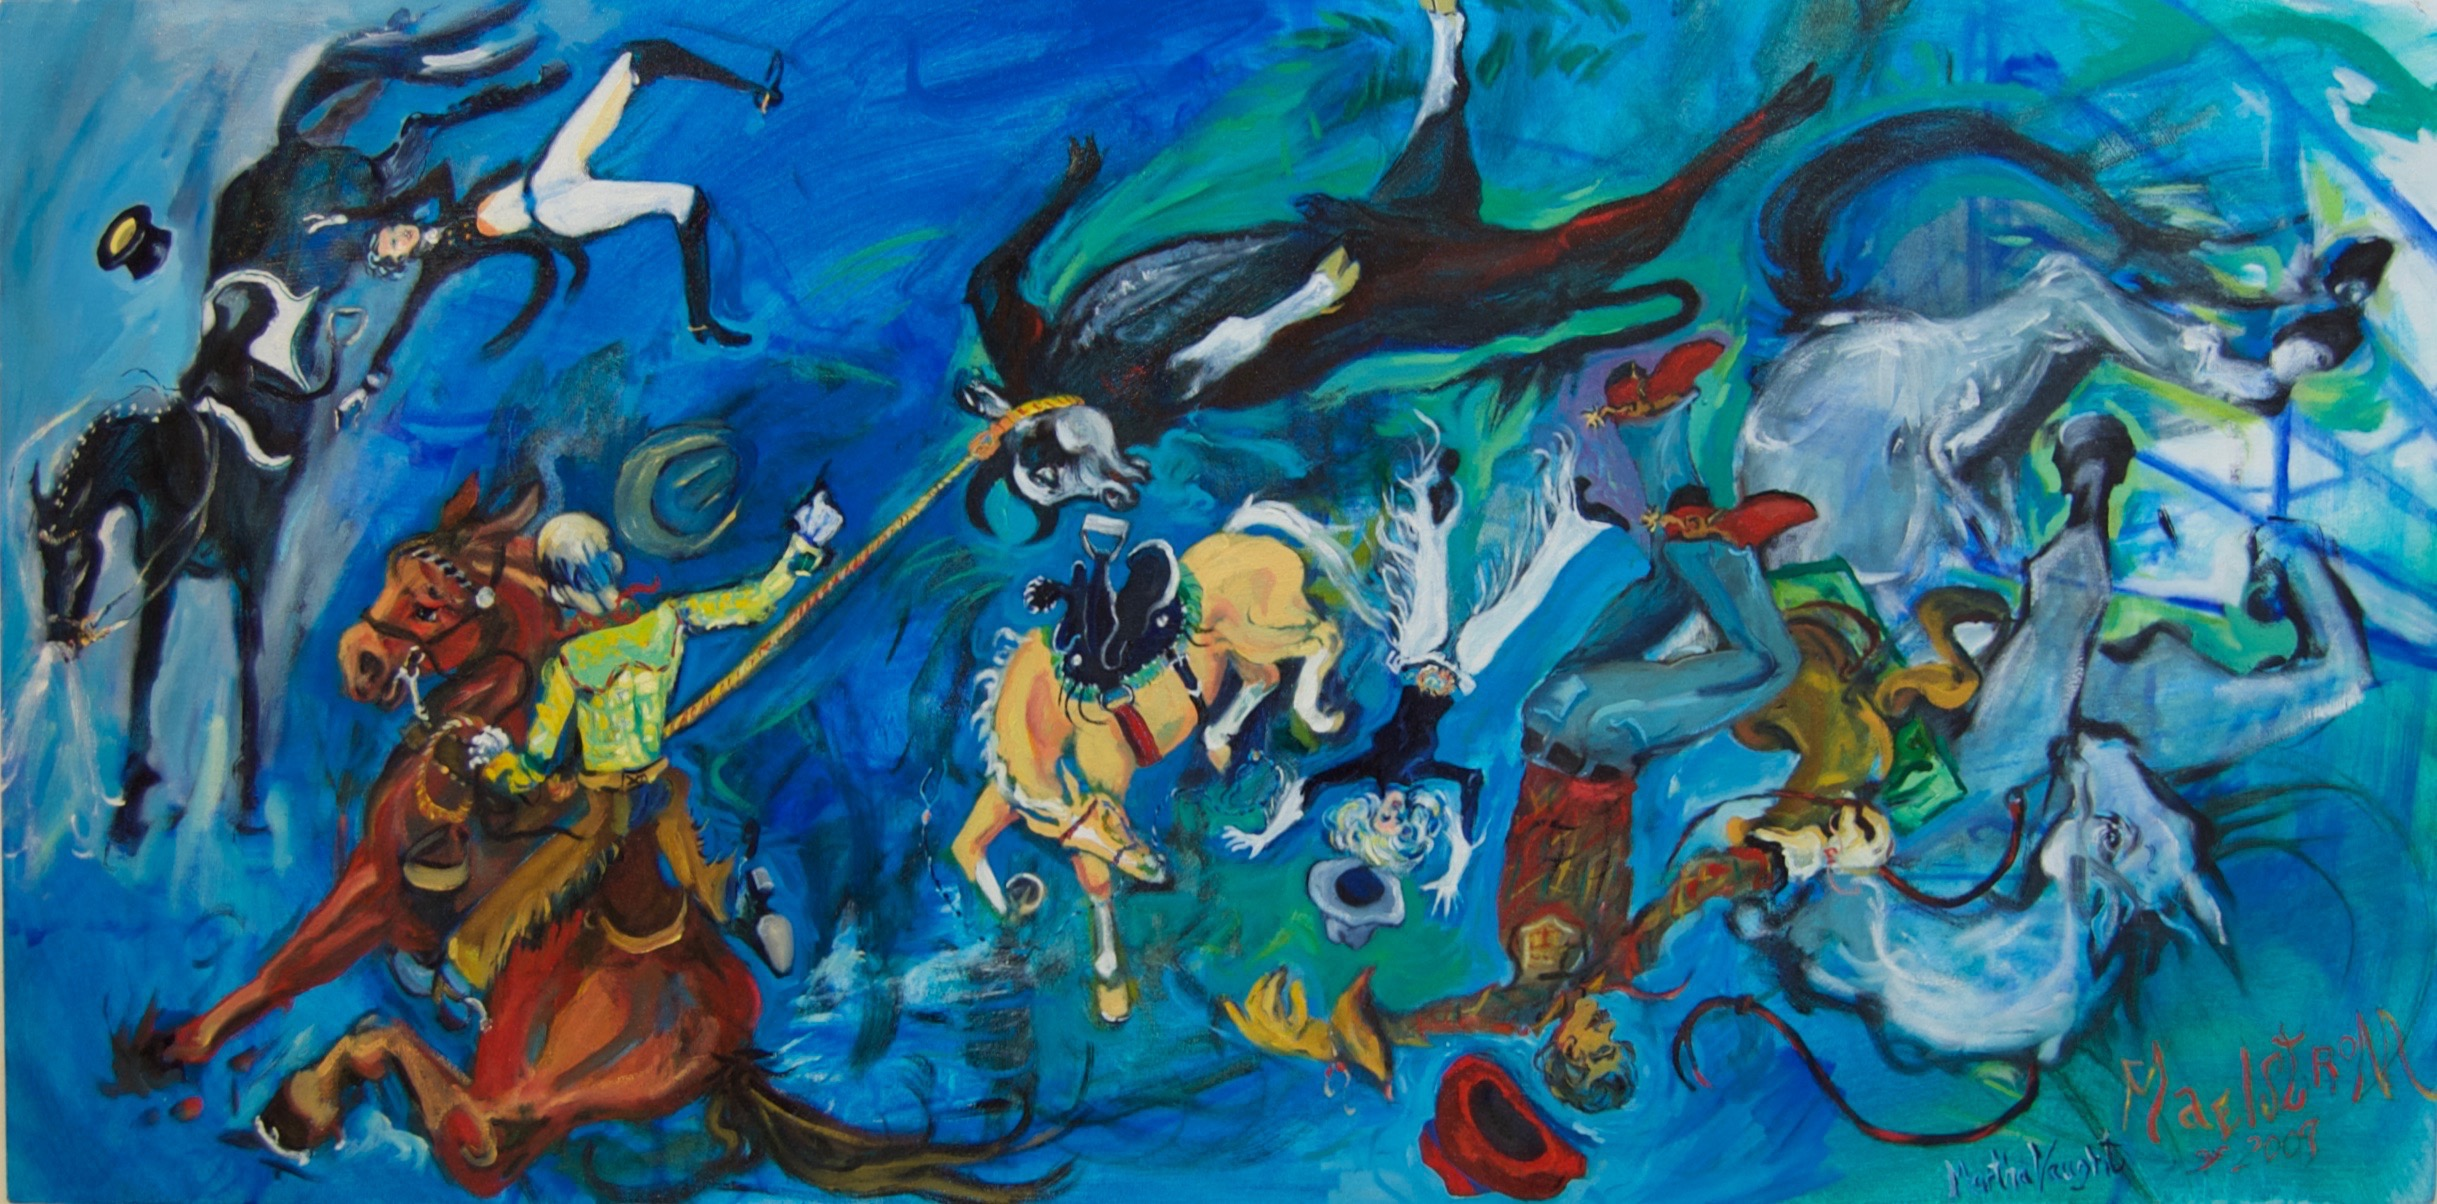 "Maelstrom 2009, oil on canvas, 24"" x 48', 2010, by Martha Lindenborg Vaught"